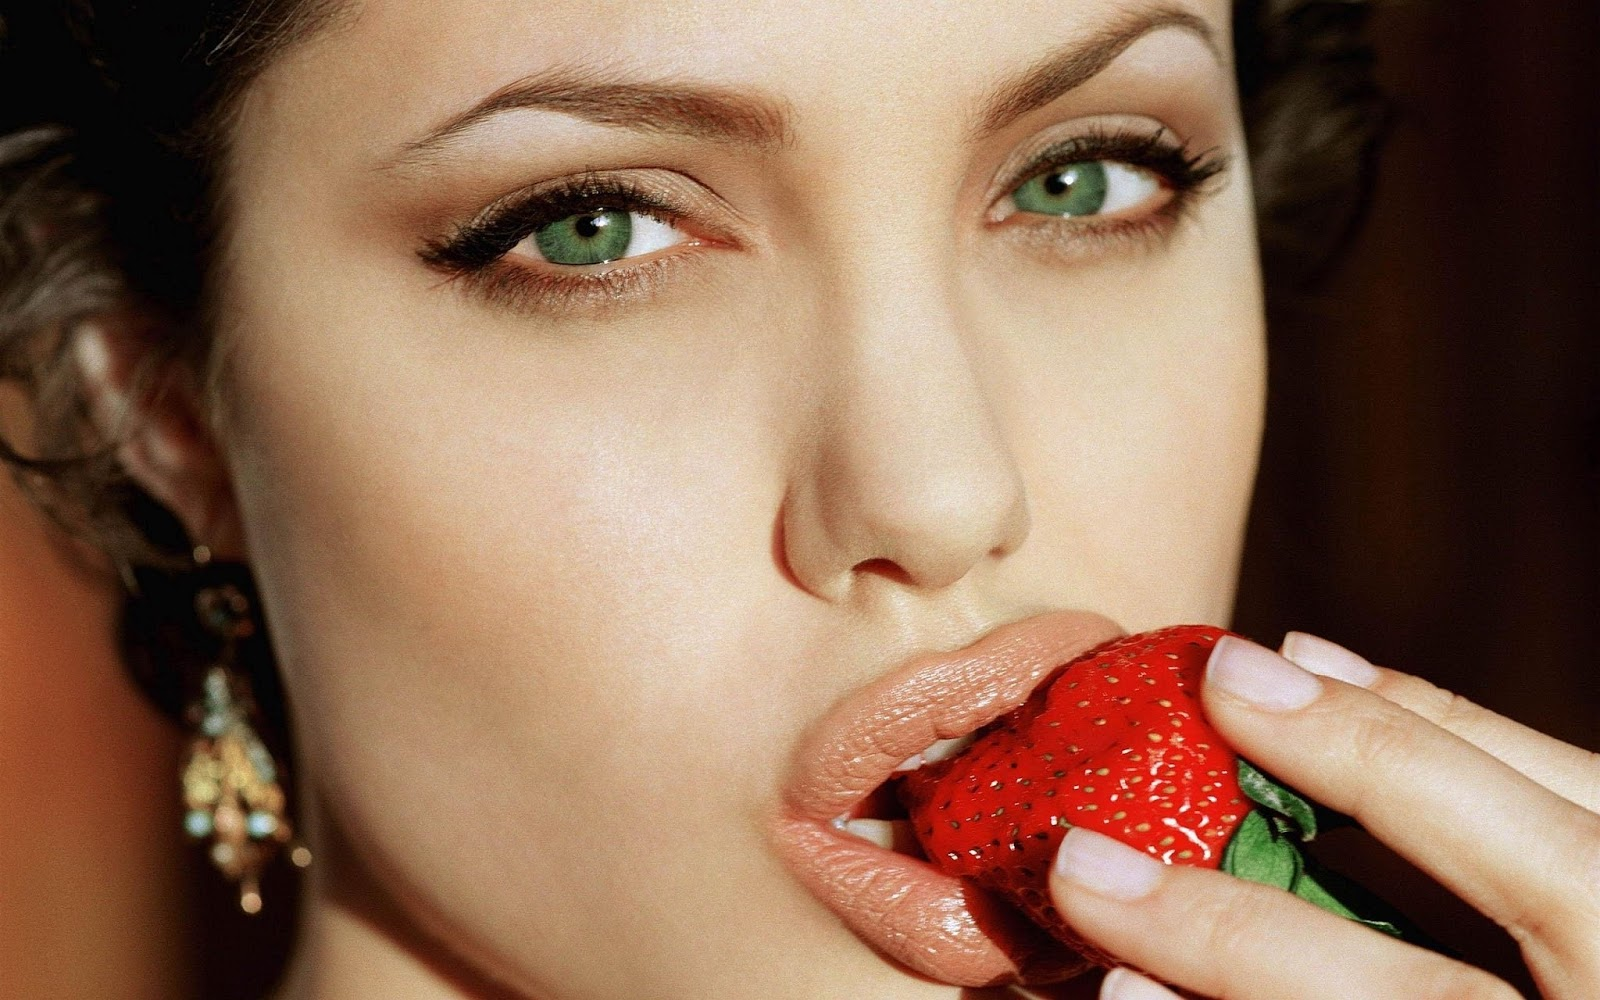 Angelina Jolie Angelina Jolie in Eating strawberry Hot Bold Sexy Pics in Hollywood Actress